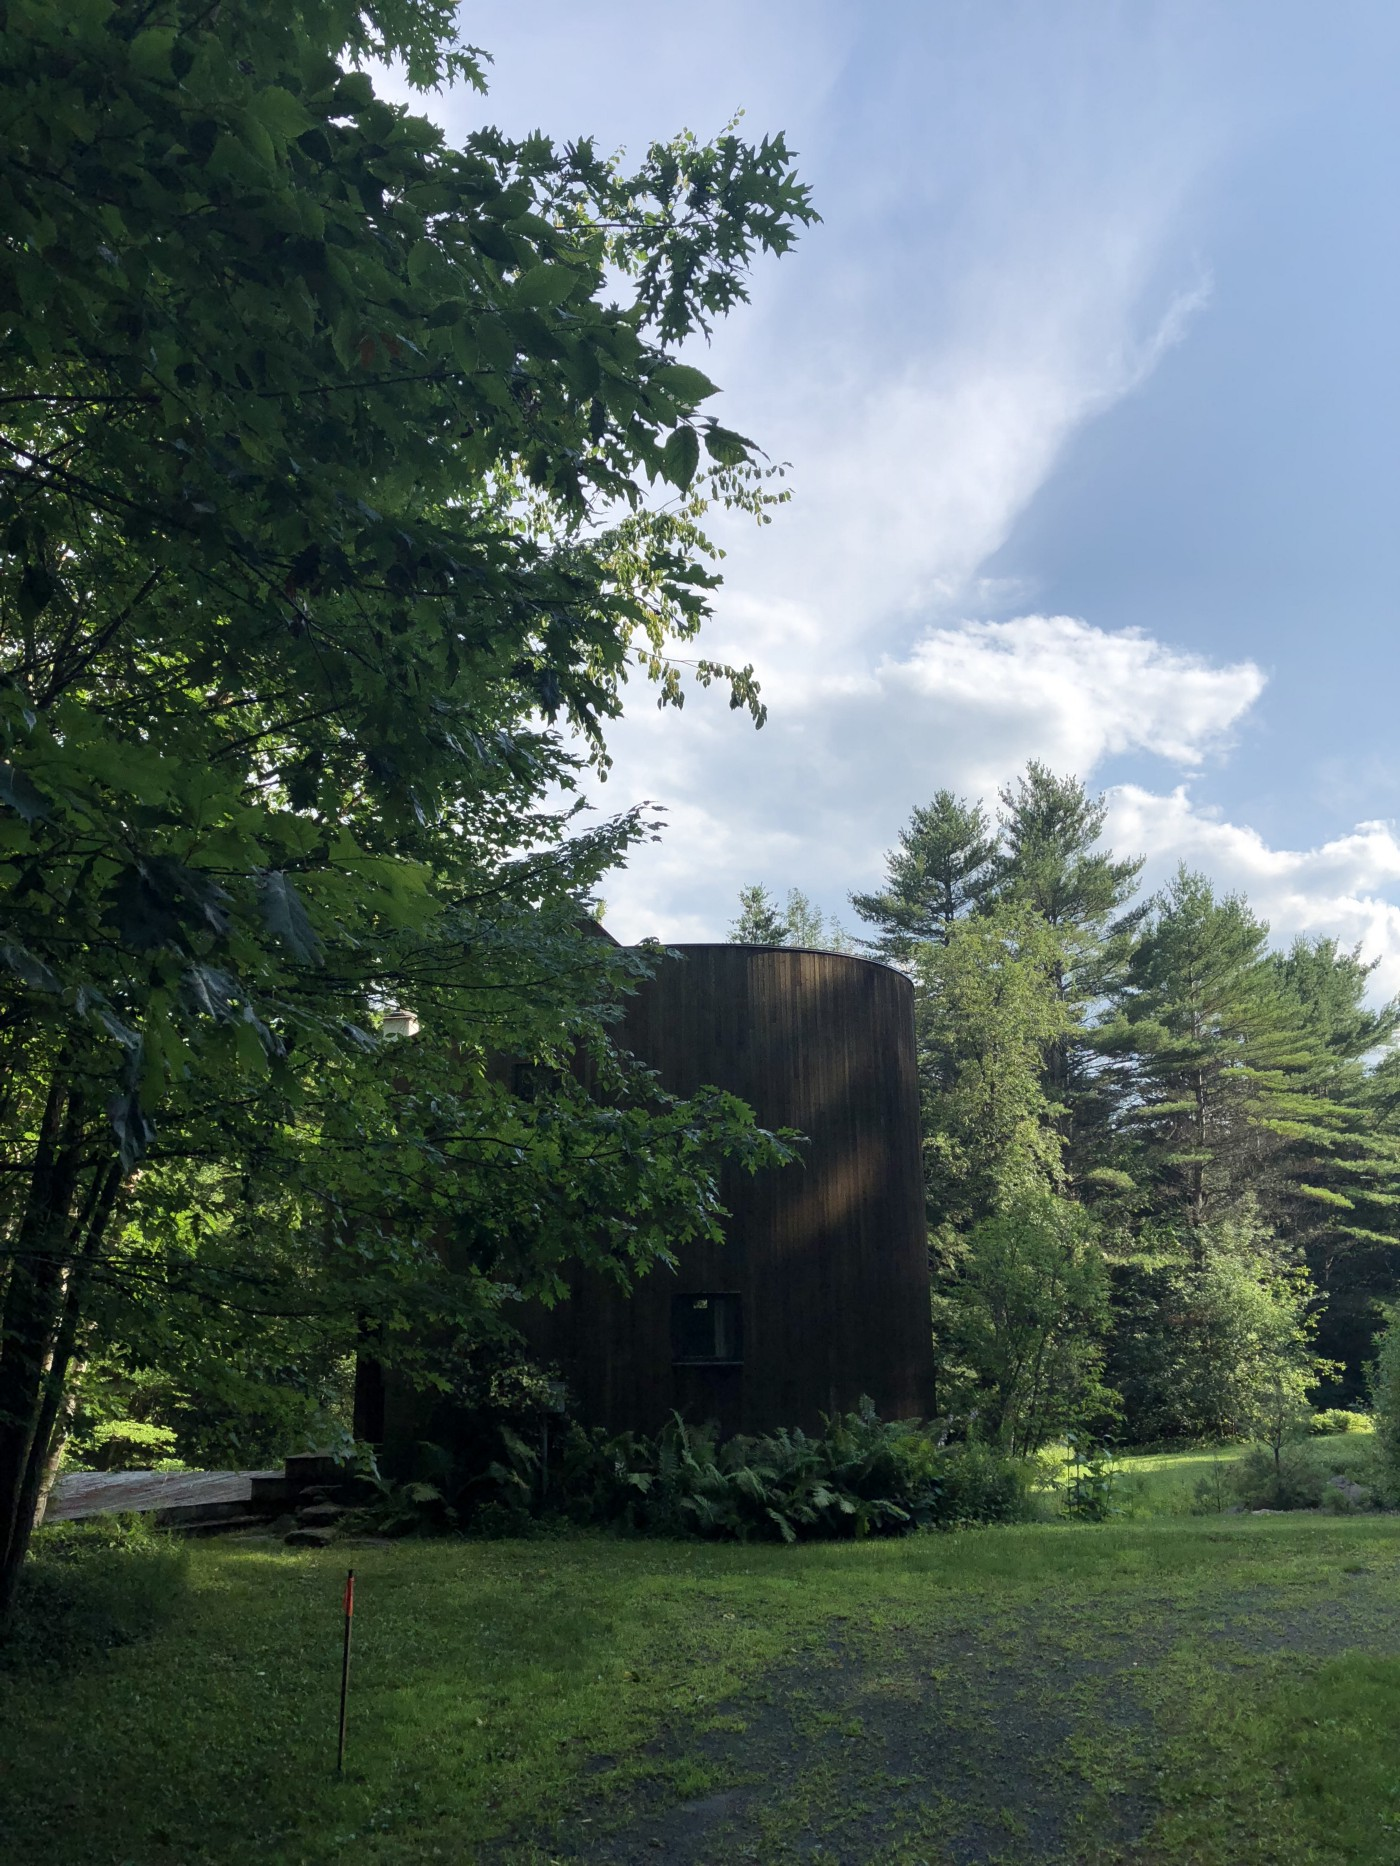 Surrounded by trees, a dark wooden cylinder of a house rising three stories out of the ground.